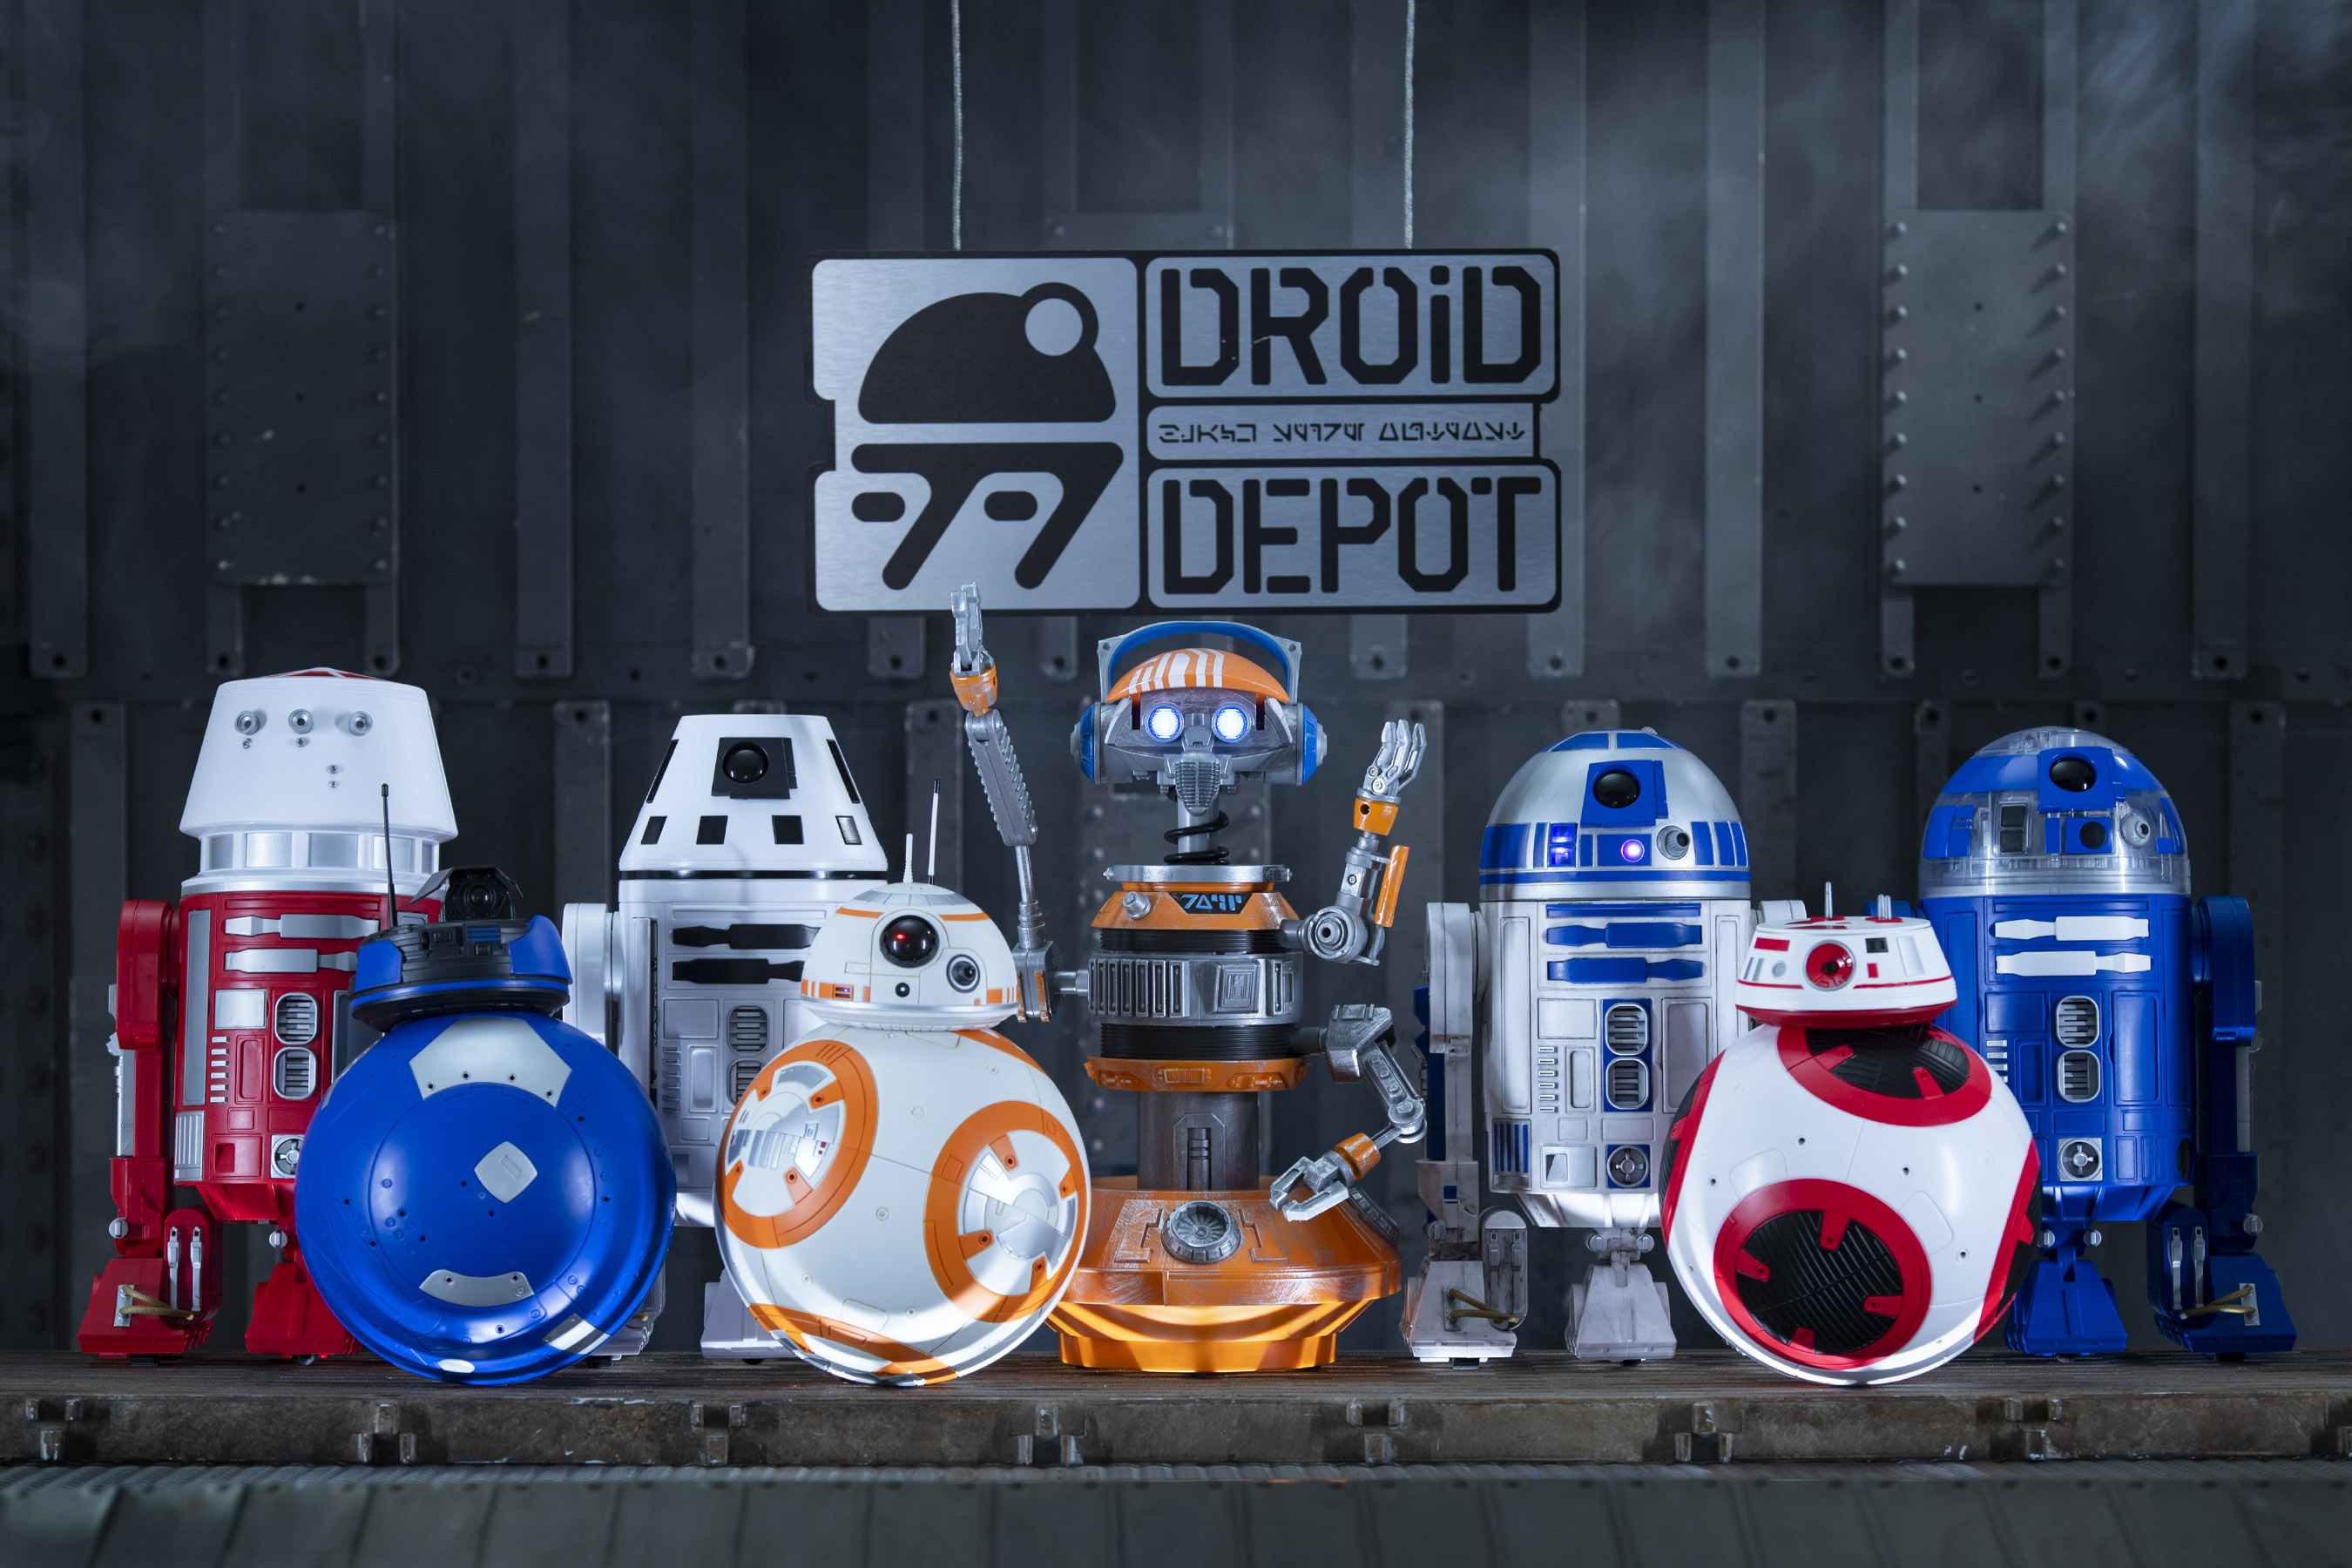 Droid Depot in Star Wars Galaxy's Edge